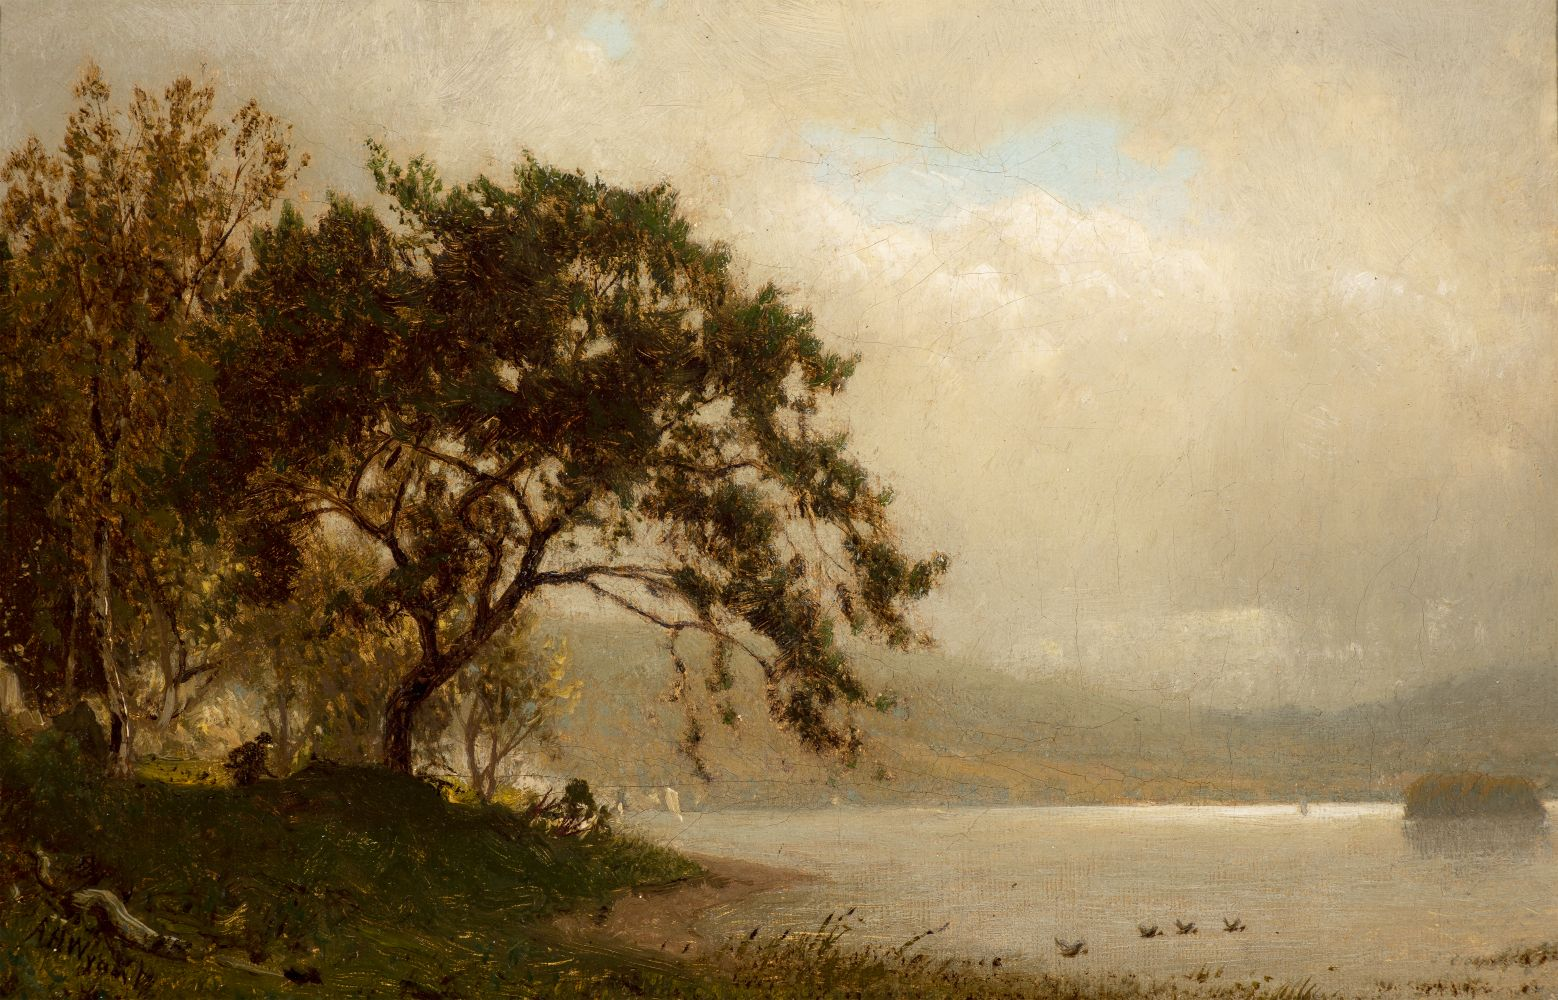 Alexander Helwig Wyant (1836–1892), The Duck Hunter, c. 1872–75, oil on canvas, 6 1/8 x 9 1/8 in., signed lower left: AH Wyant